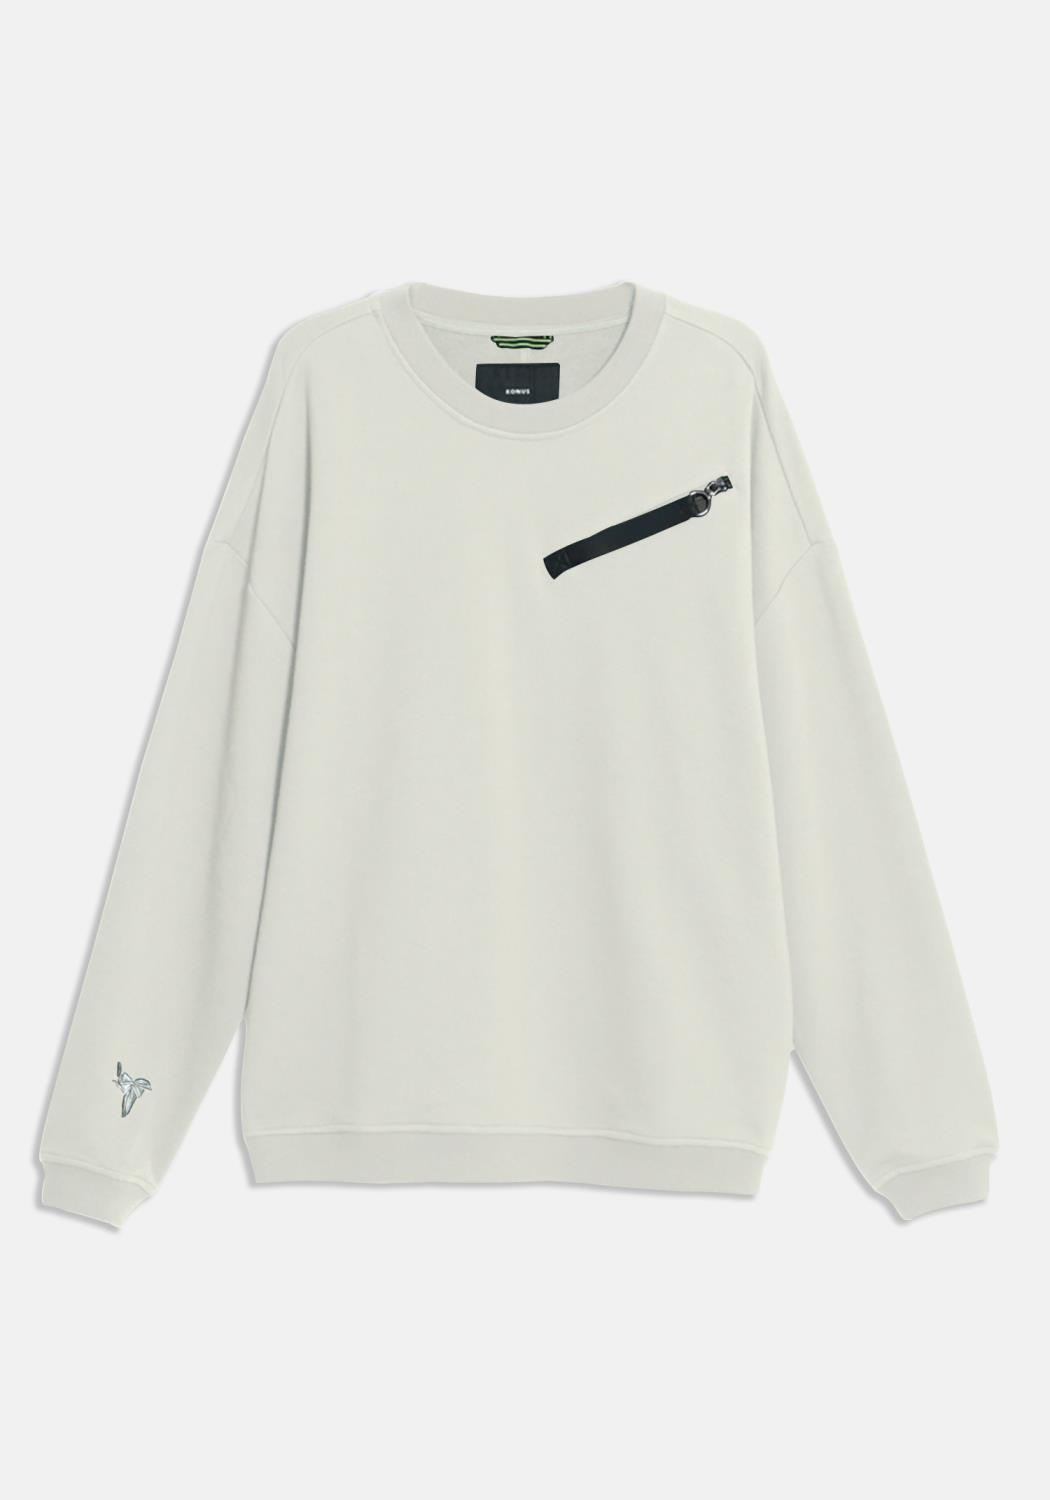 Konus Sweatshirt with Zipper Chest Pocket with Nylon Tape